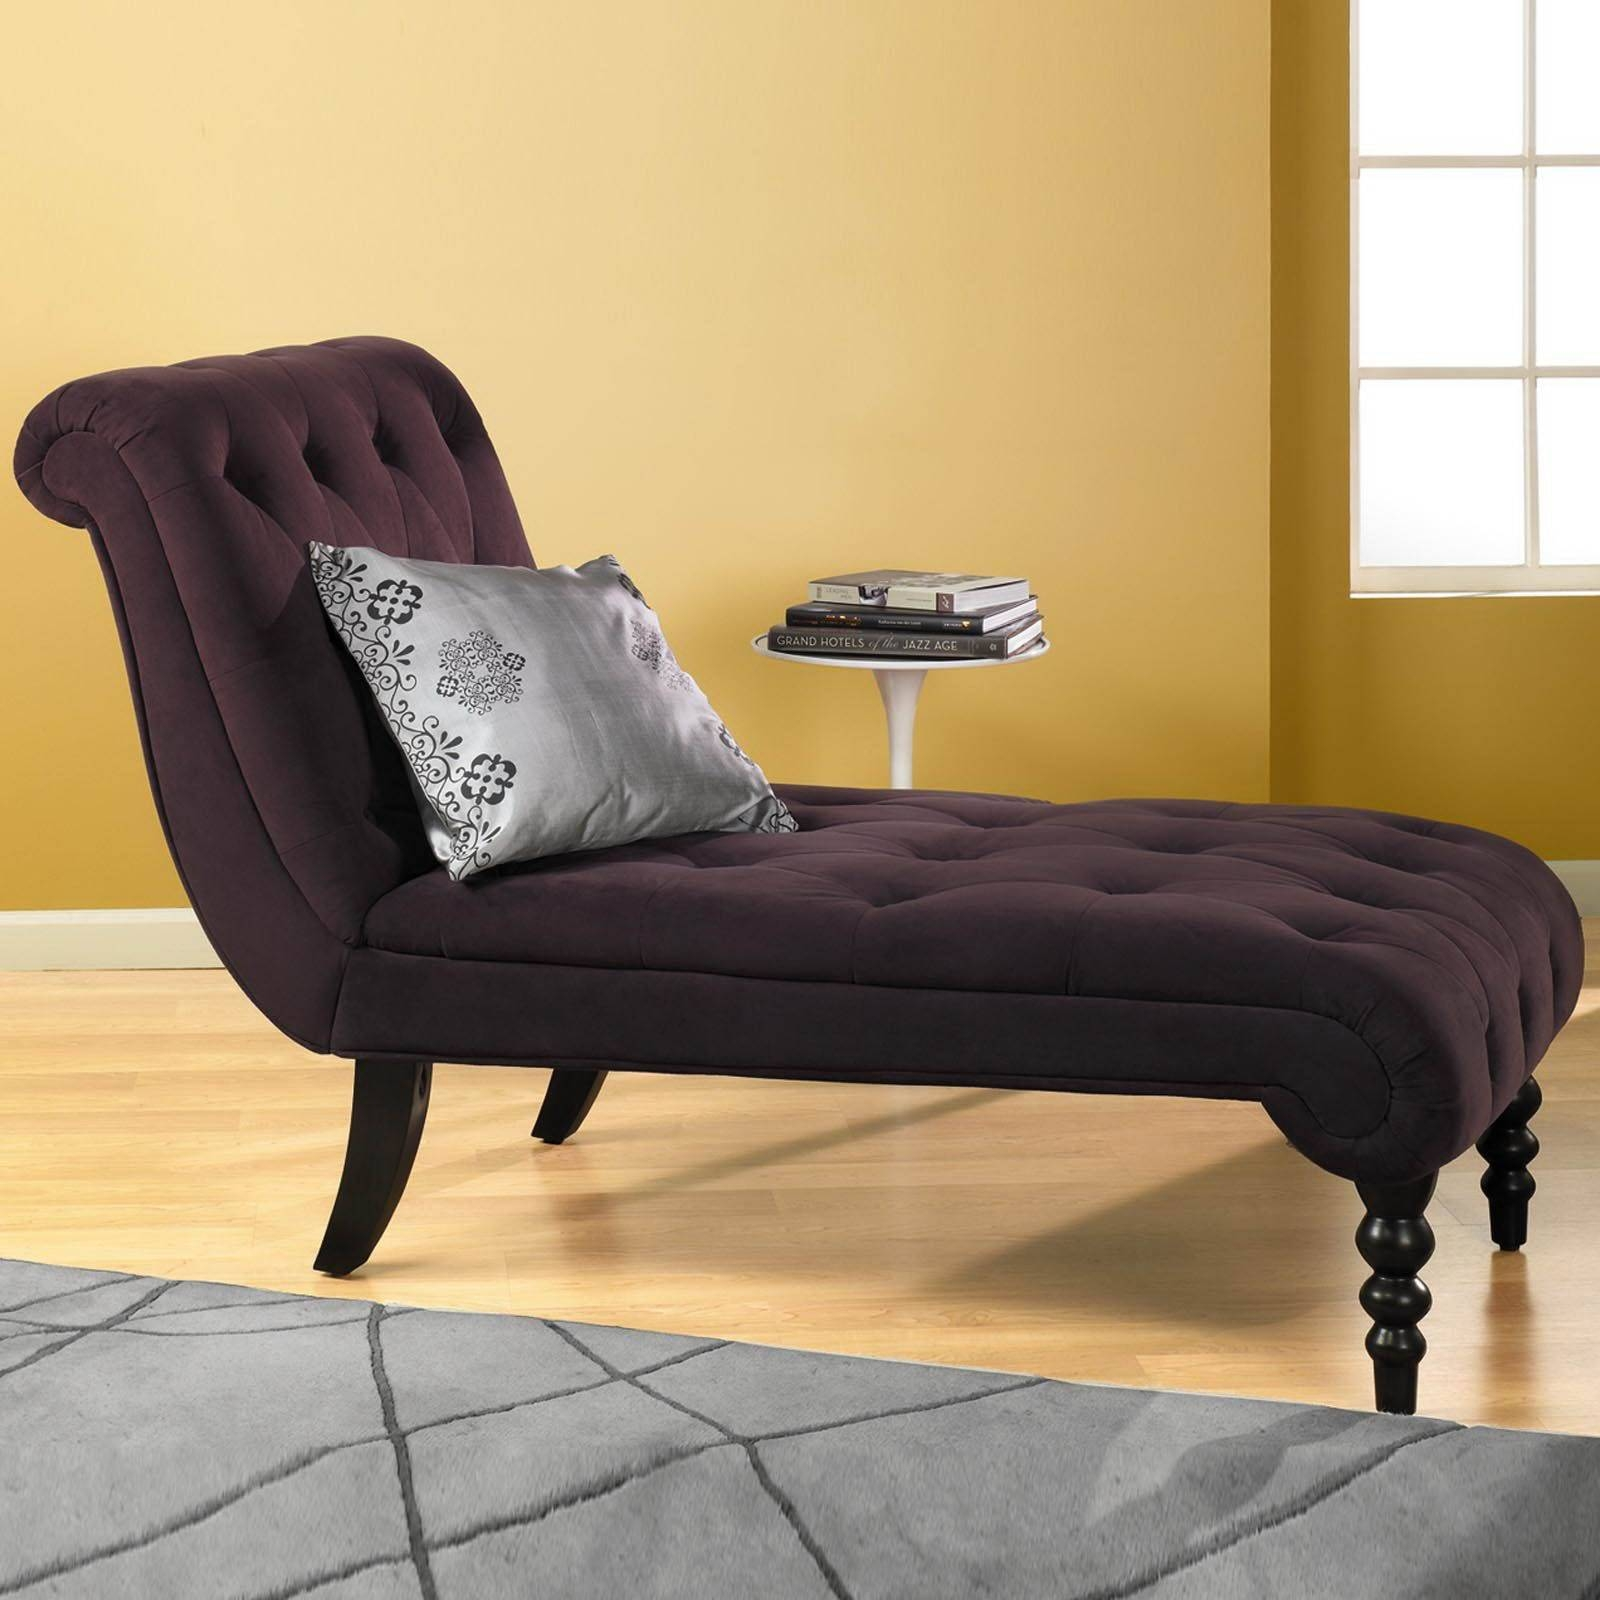 Furniture: Cute Purple Chaise Lounge For Living Room Furniture intended for Chaise Sofa Chairs (Image 13 of 15)